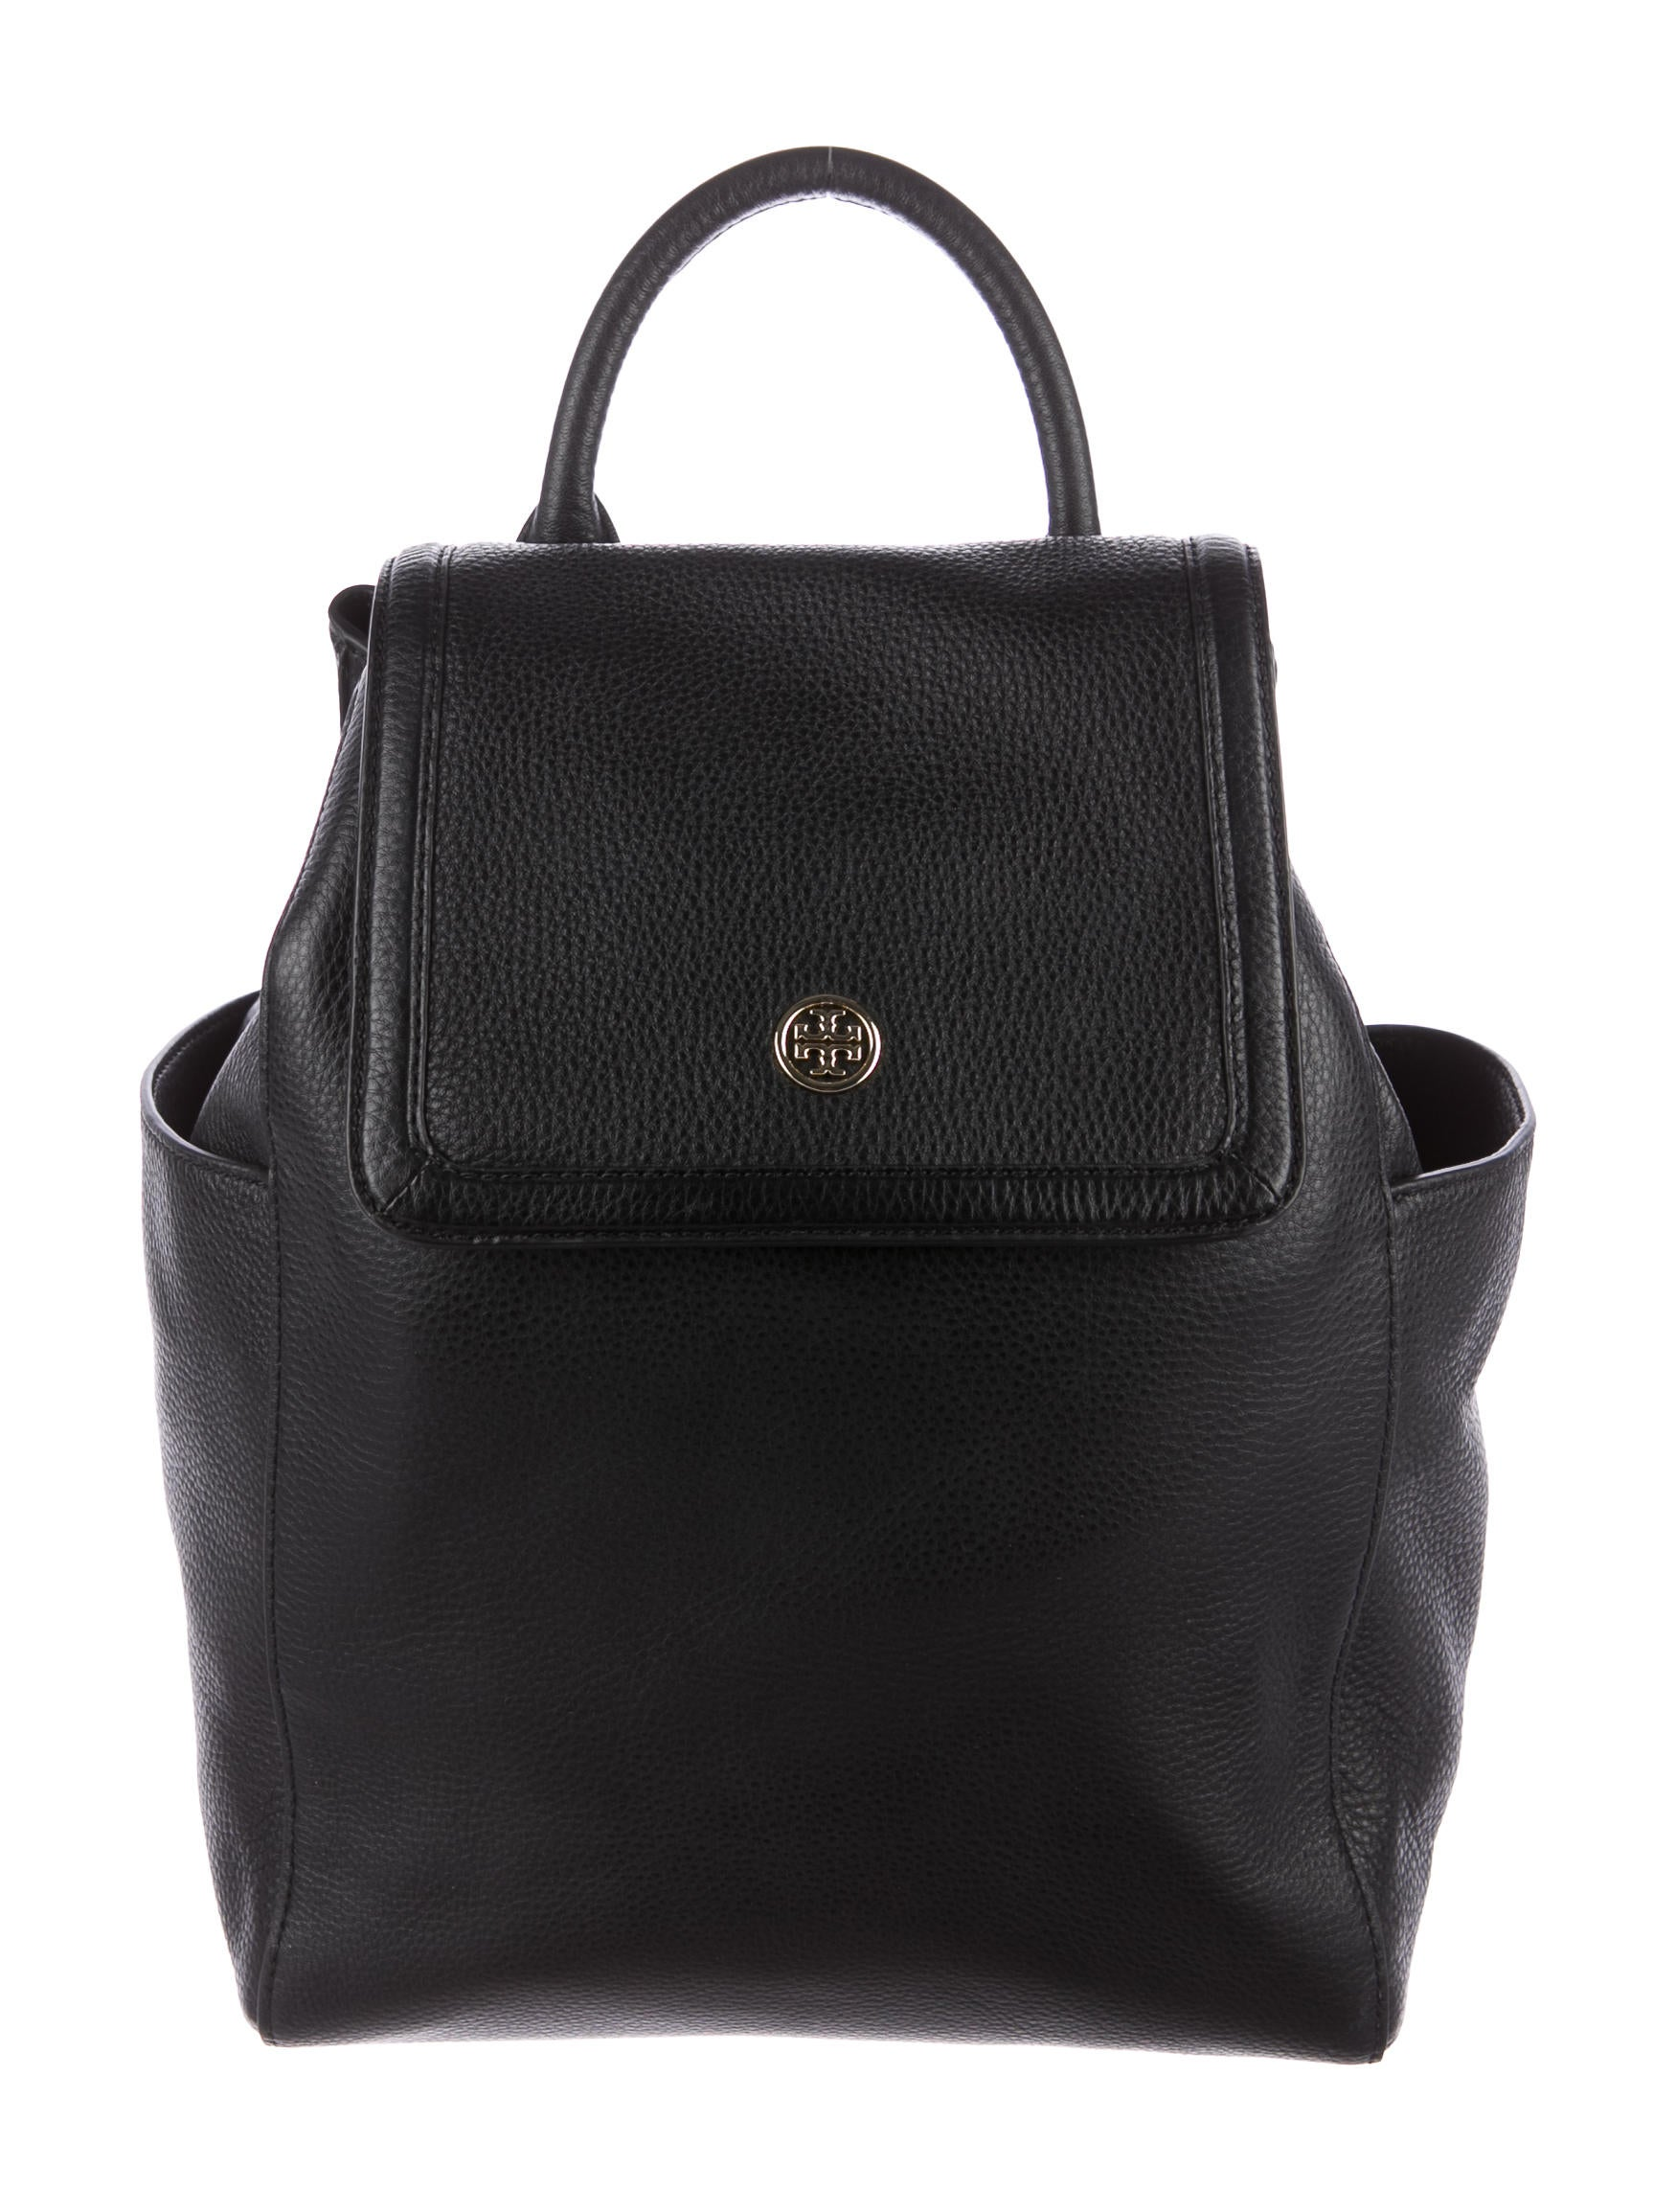 991d14a6357 Tory Burch Landon Flap Backpack - Handbags - WTO105869